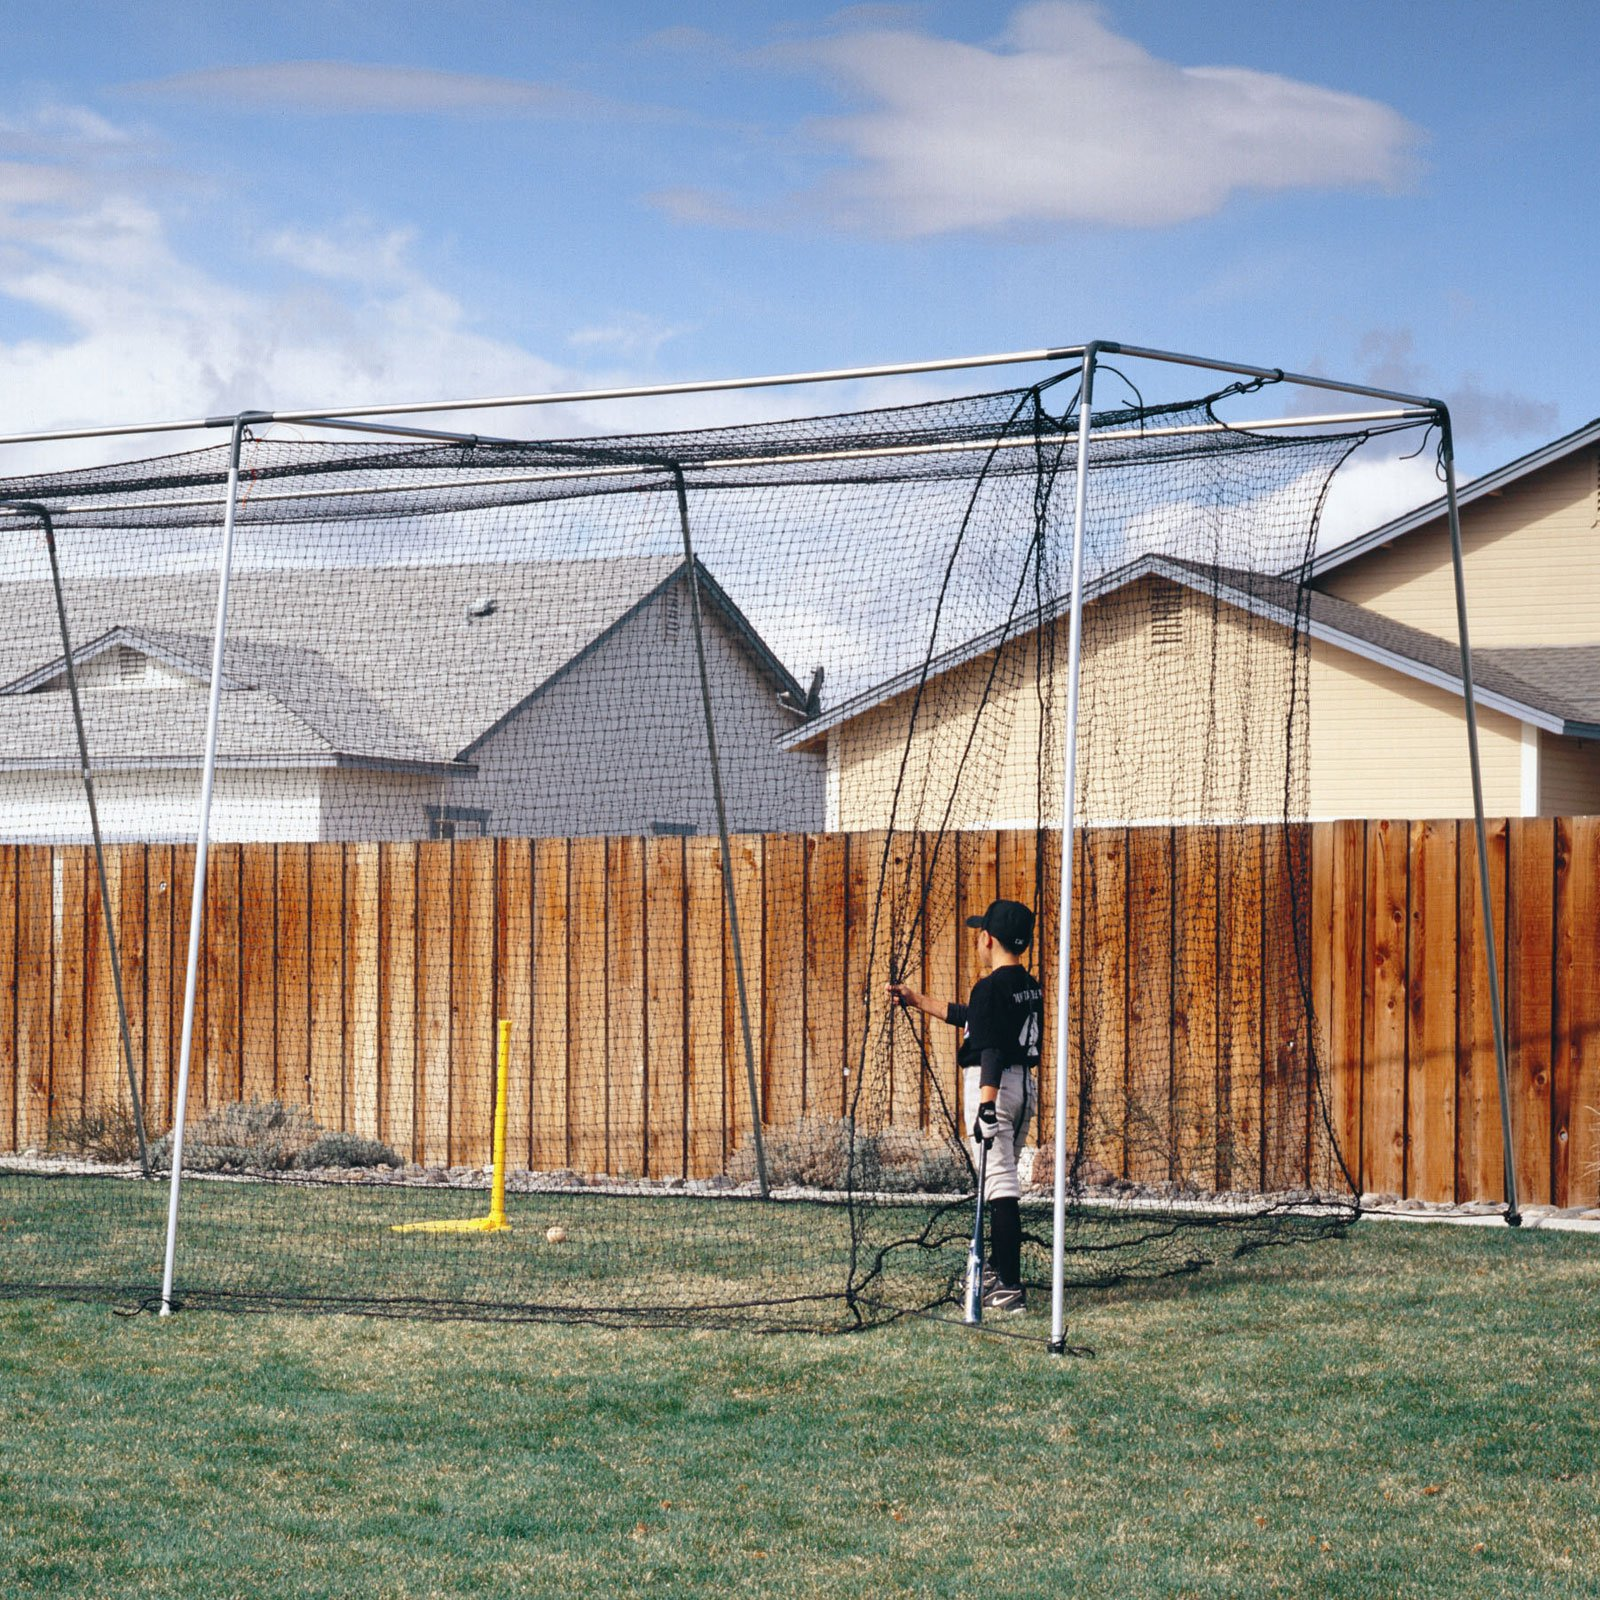 ATEC Backyard Batting Cage Replacement Net - 70L ft.